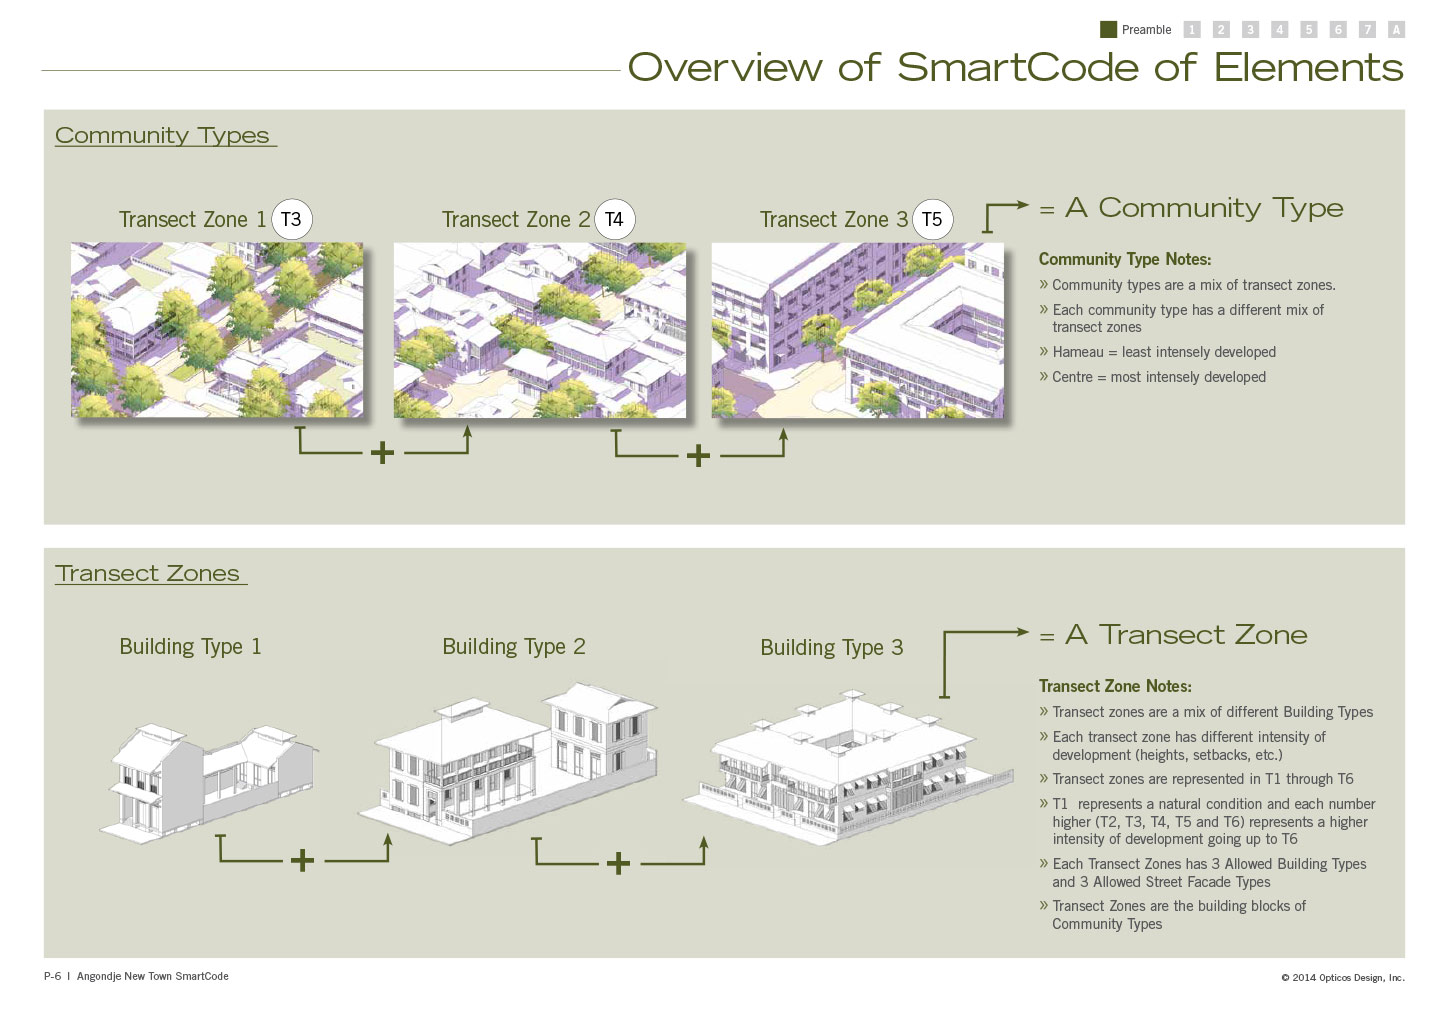 Overview of the SmartCode Elements, how community design and transect zones relate